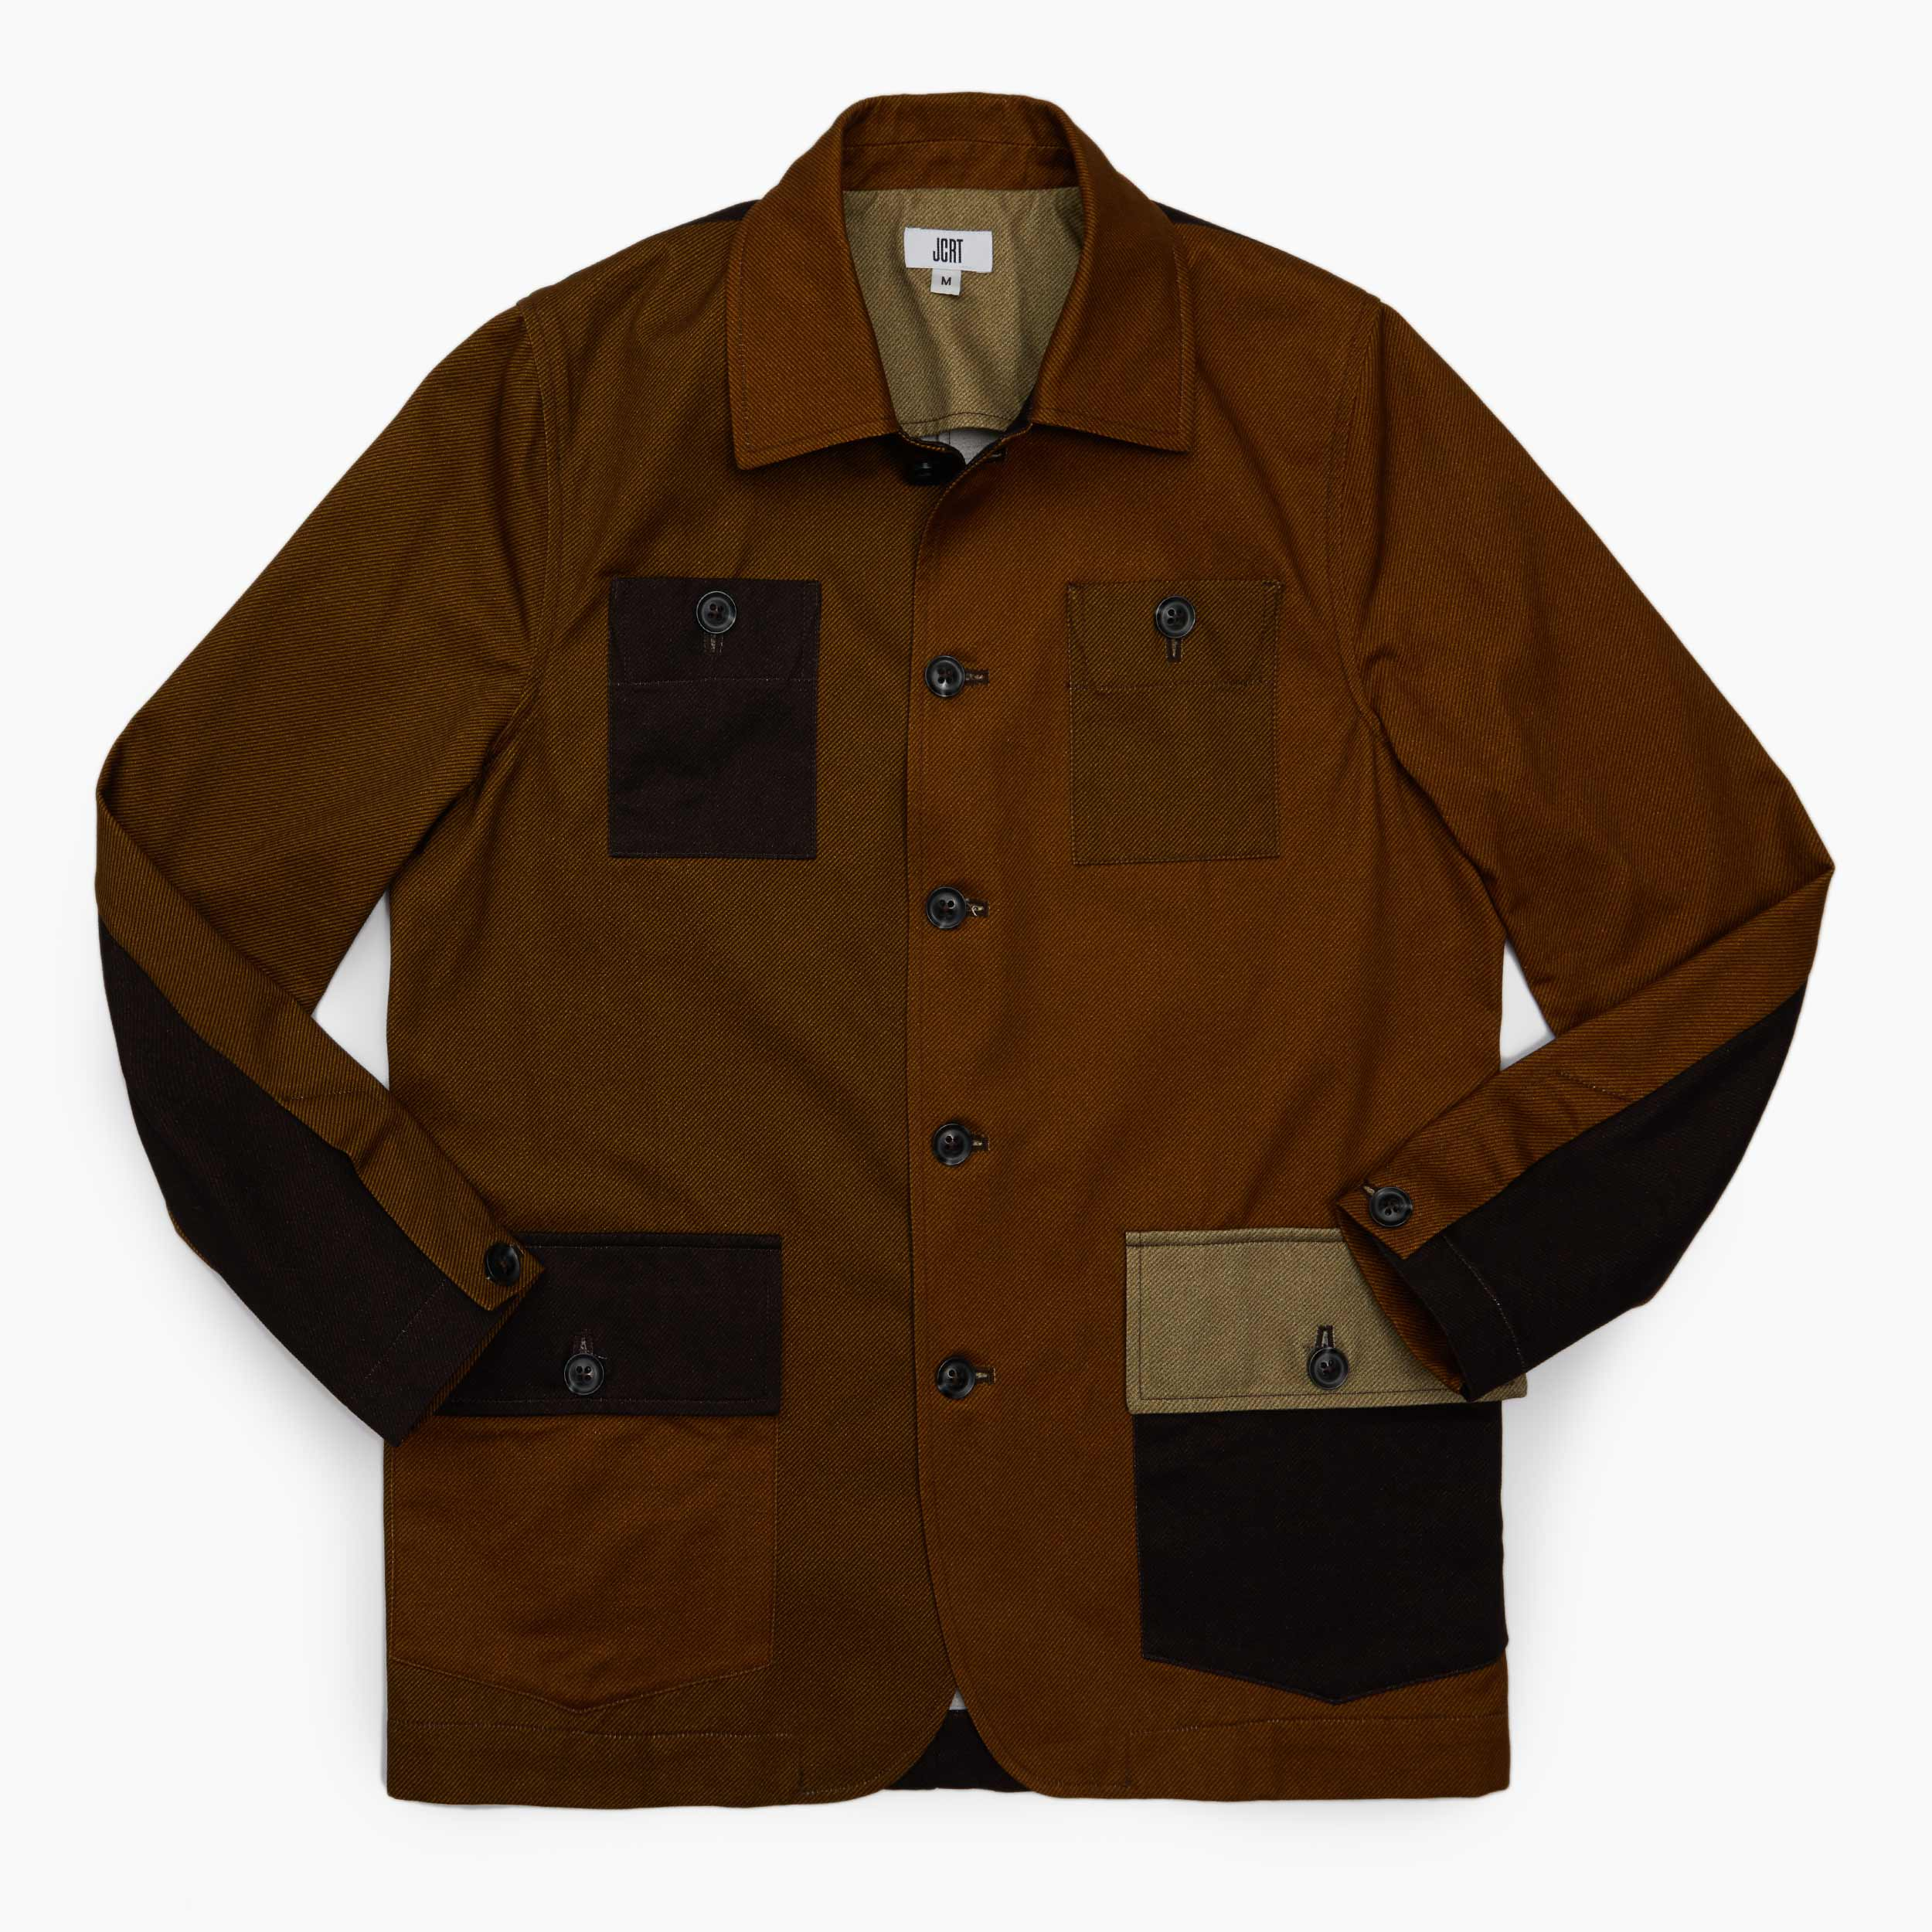 The Leather Twill Chore Coat